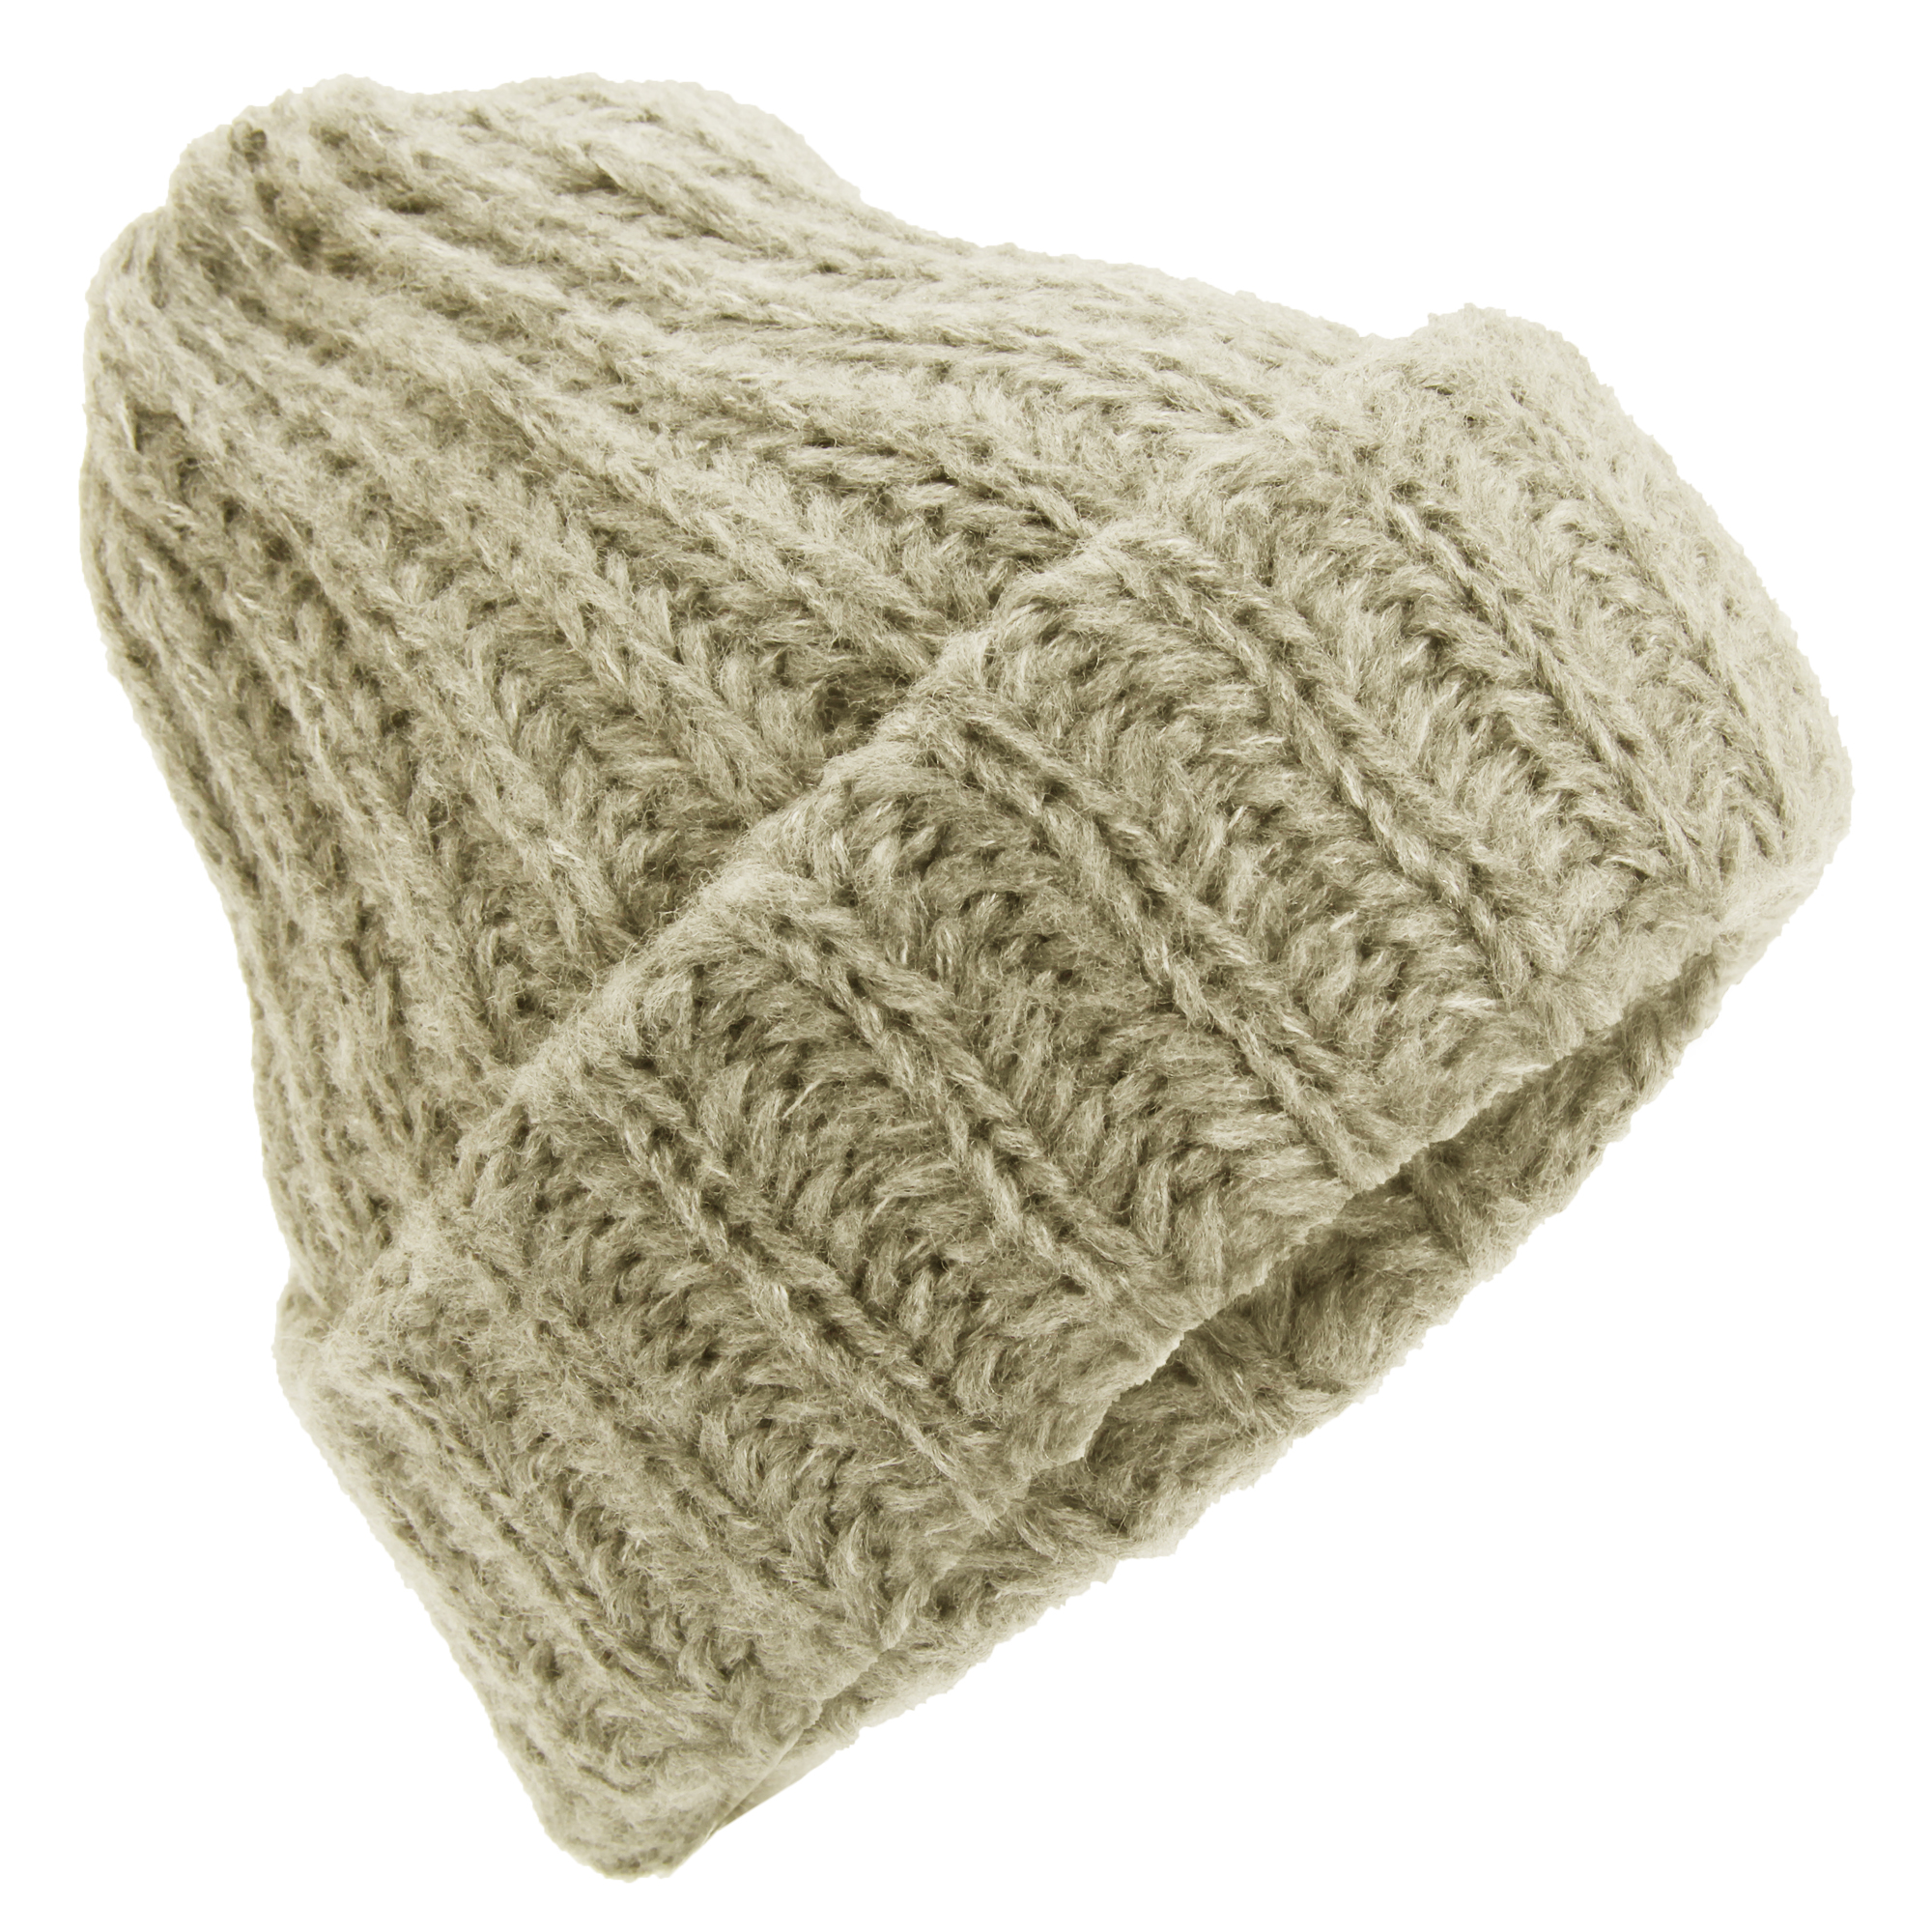 015f1ab23923b Womens Cable Knit Beanie Hat - Parchment N Lead